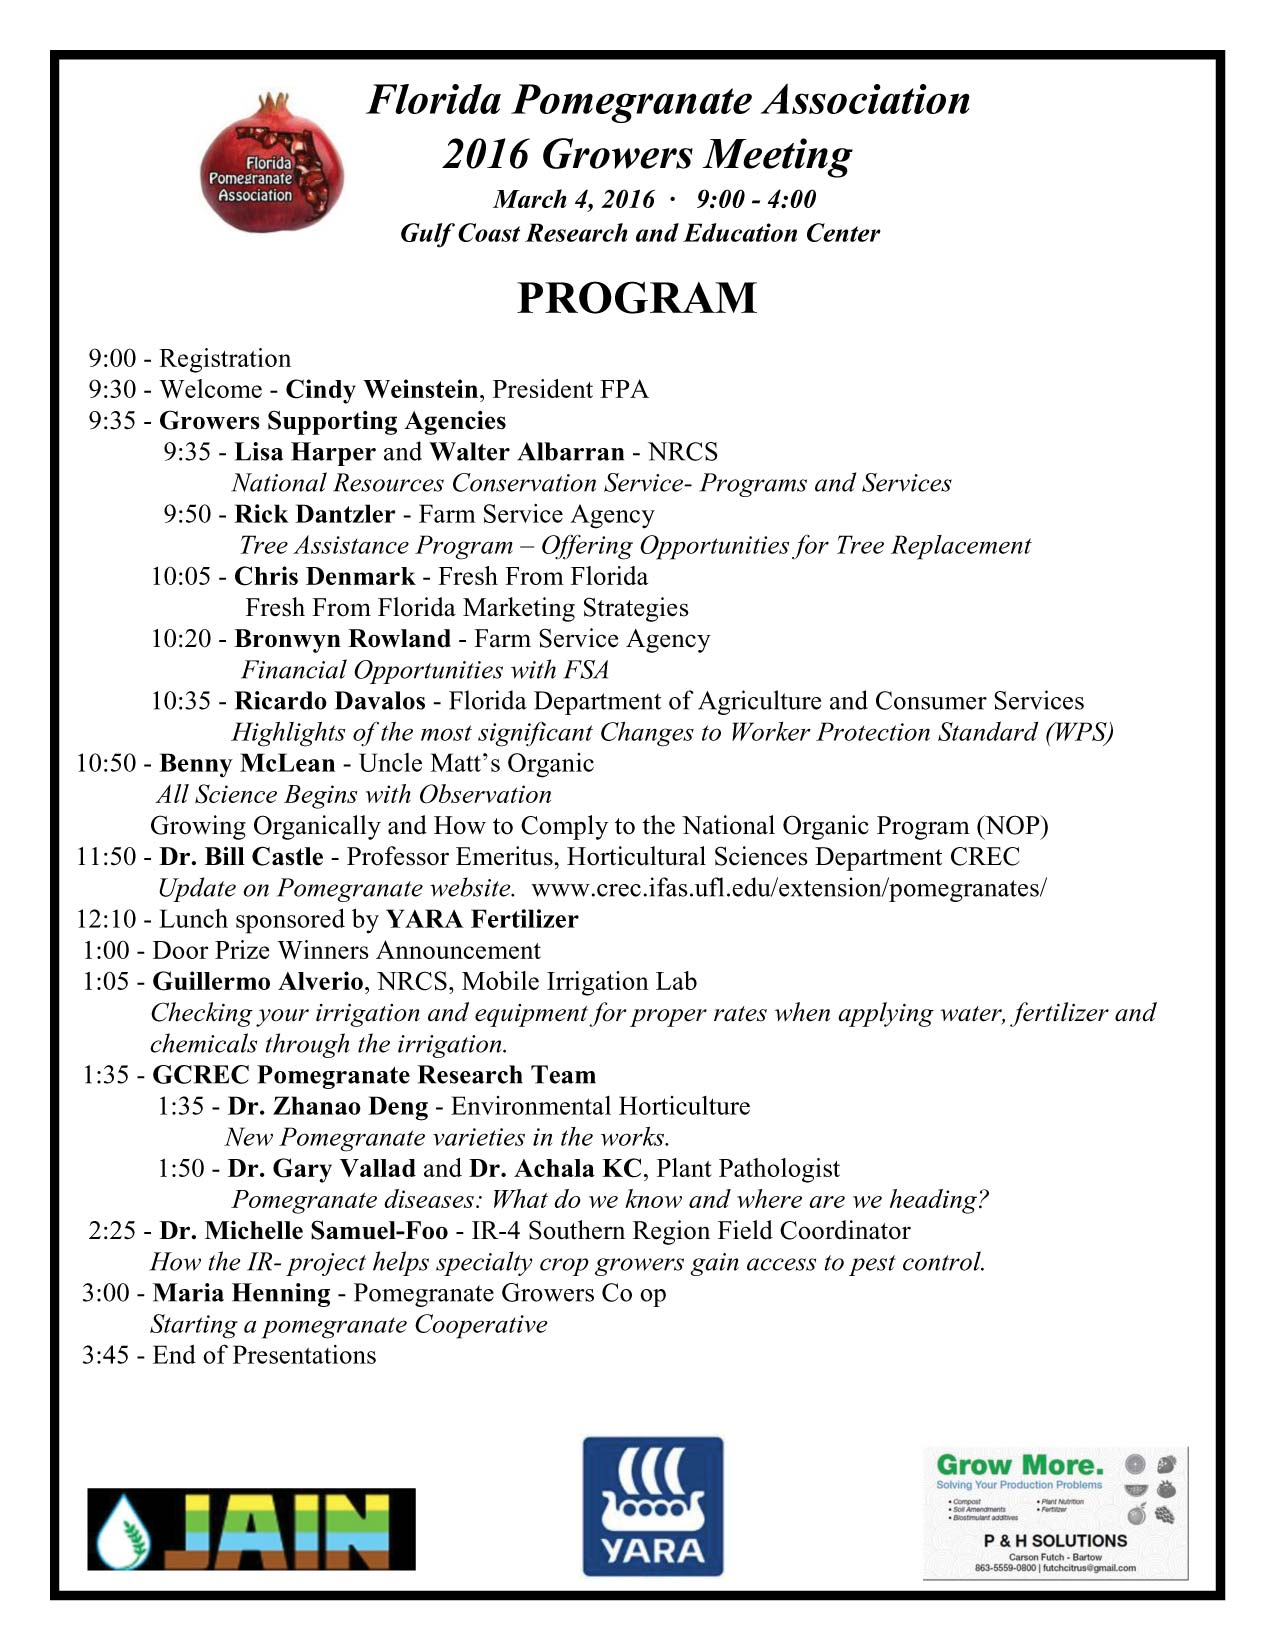 Program for 2016 FPA Growers Meeting